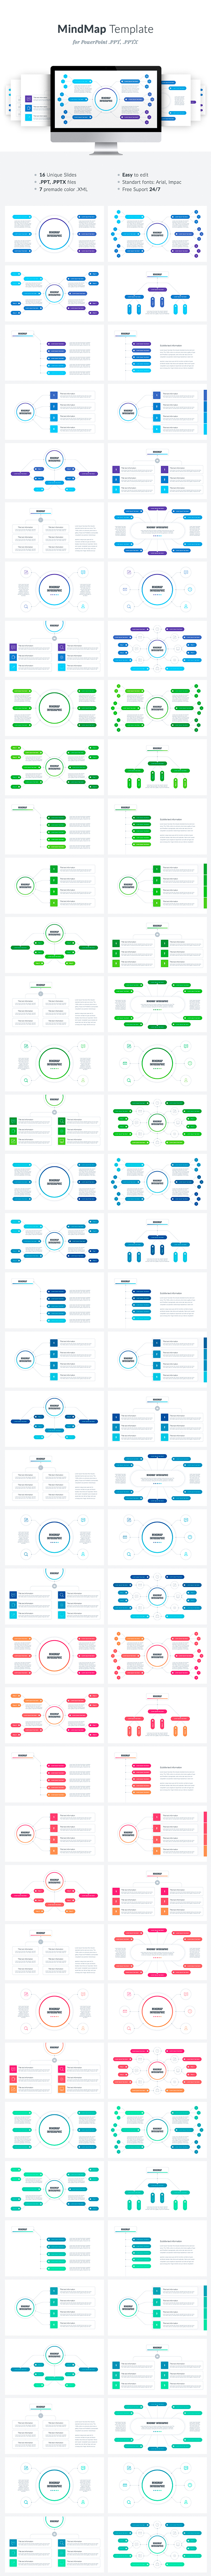 Mindmap PowerPoint Template - Pitch Deck PowerPoint Templates